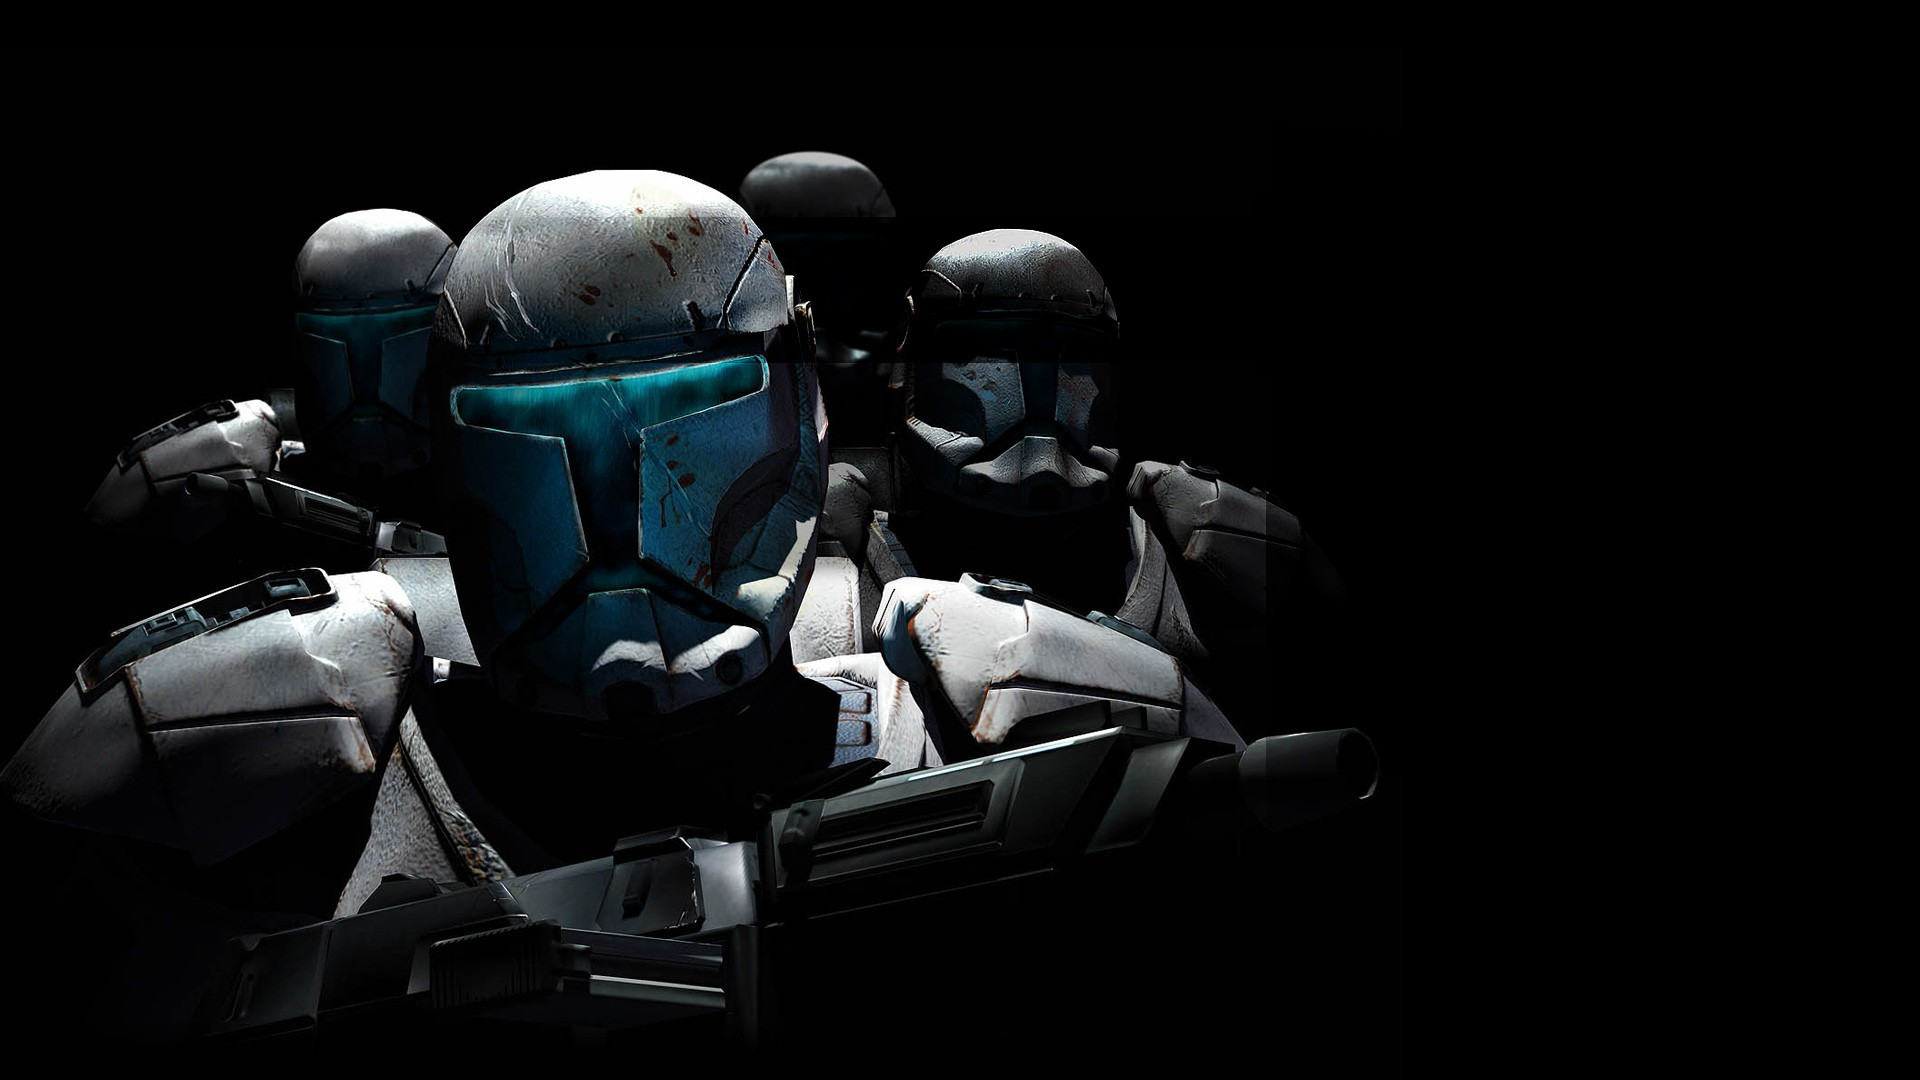 Special Forces Iphone Wallpaper Star Wars Star Wars Republic Commando Video Games Clone